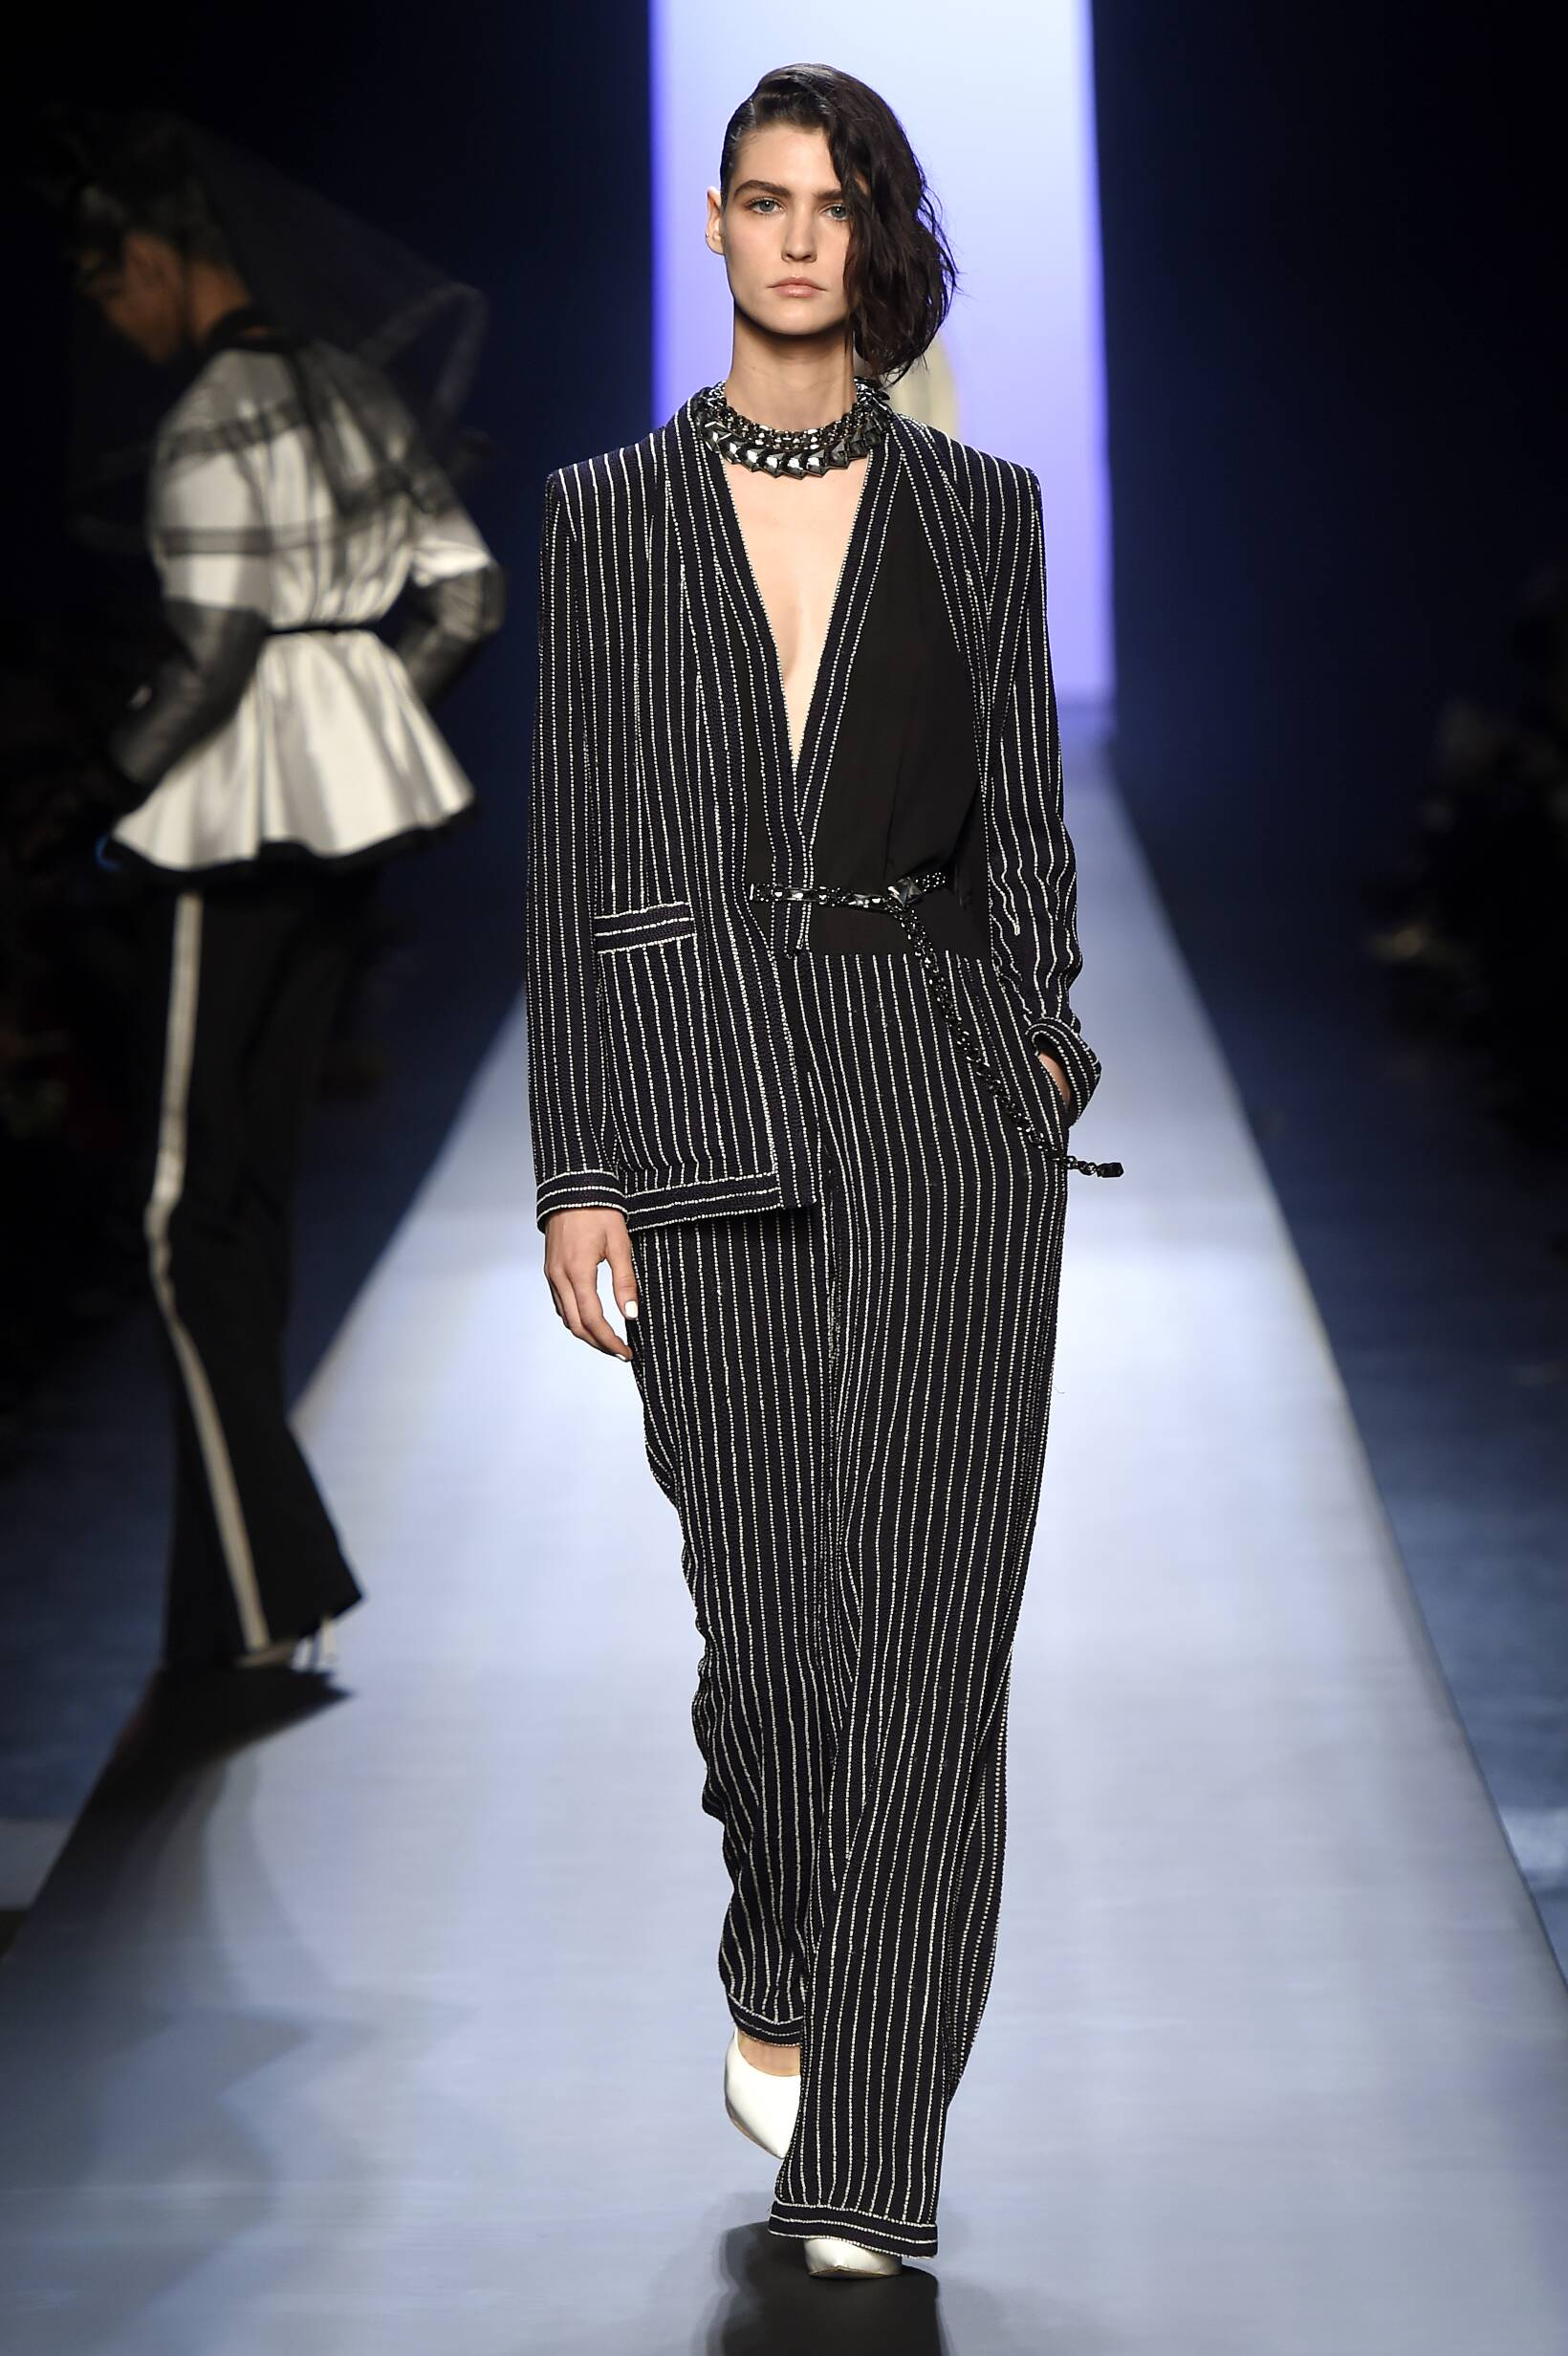 Jean Paul Gaultier Haute Couture Collection Catwalk